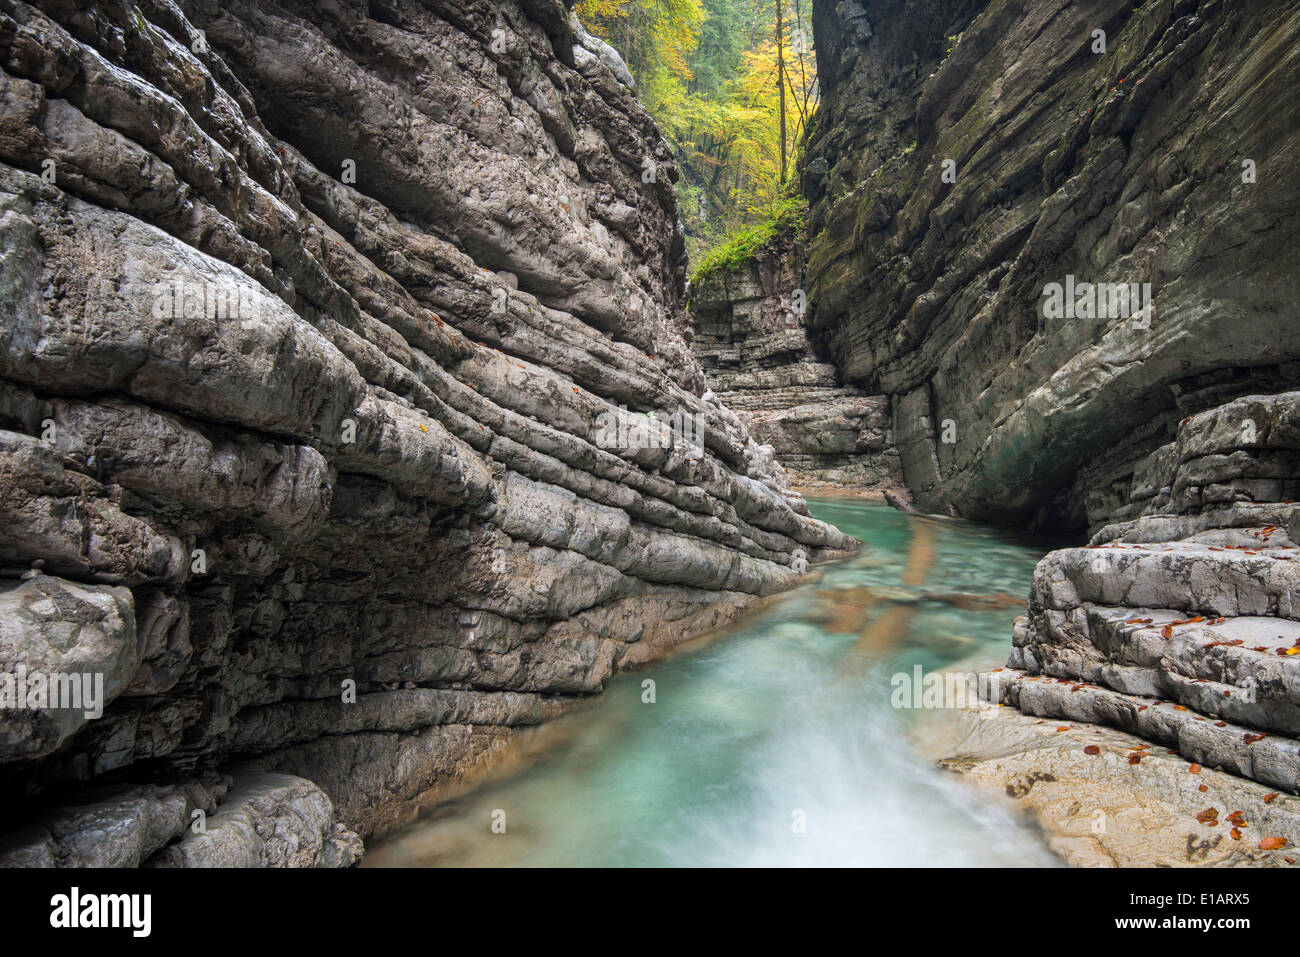 The Taugl river, Taugl gorge, Hallein District, Salzburg, Austria Stock Photo